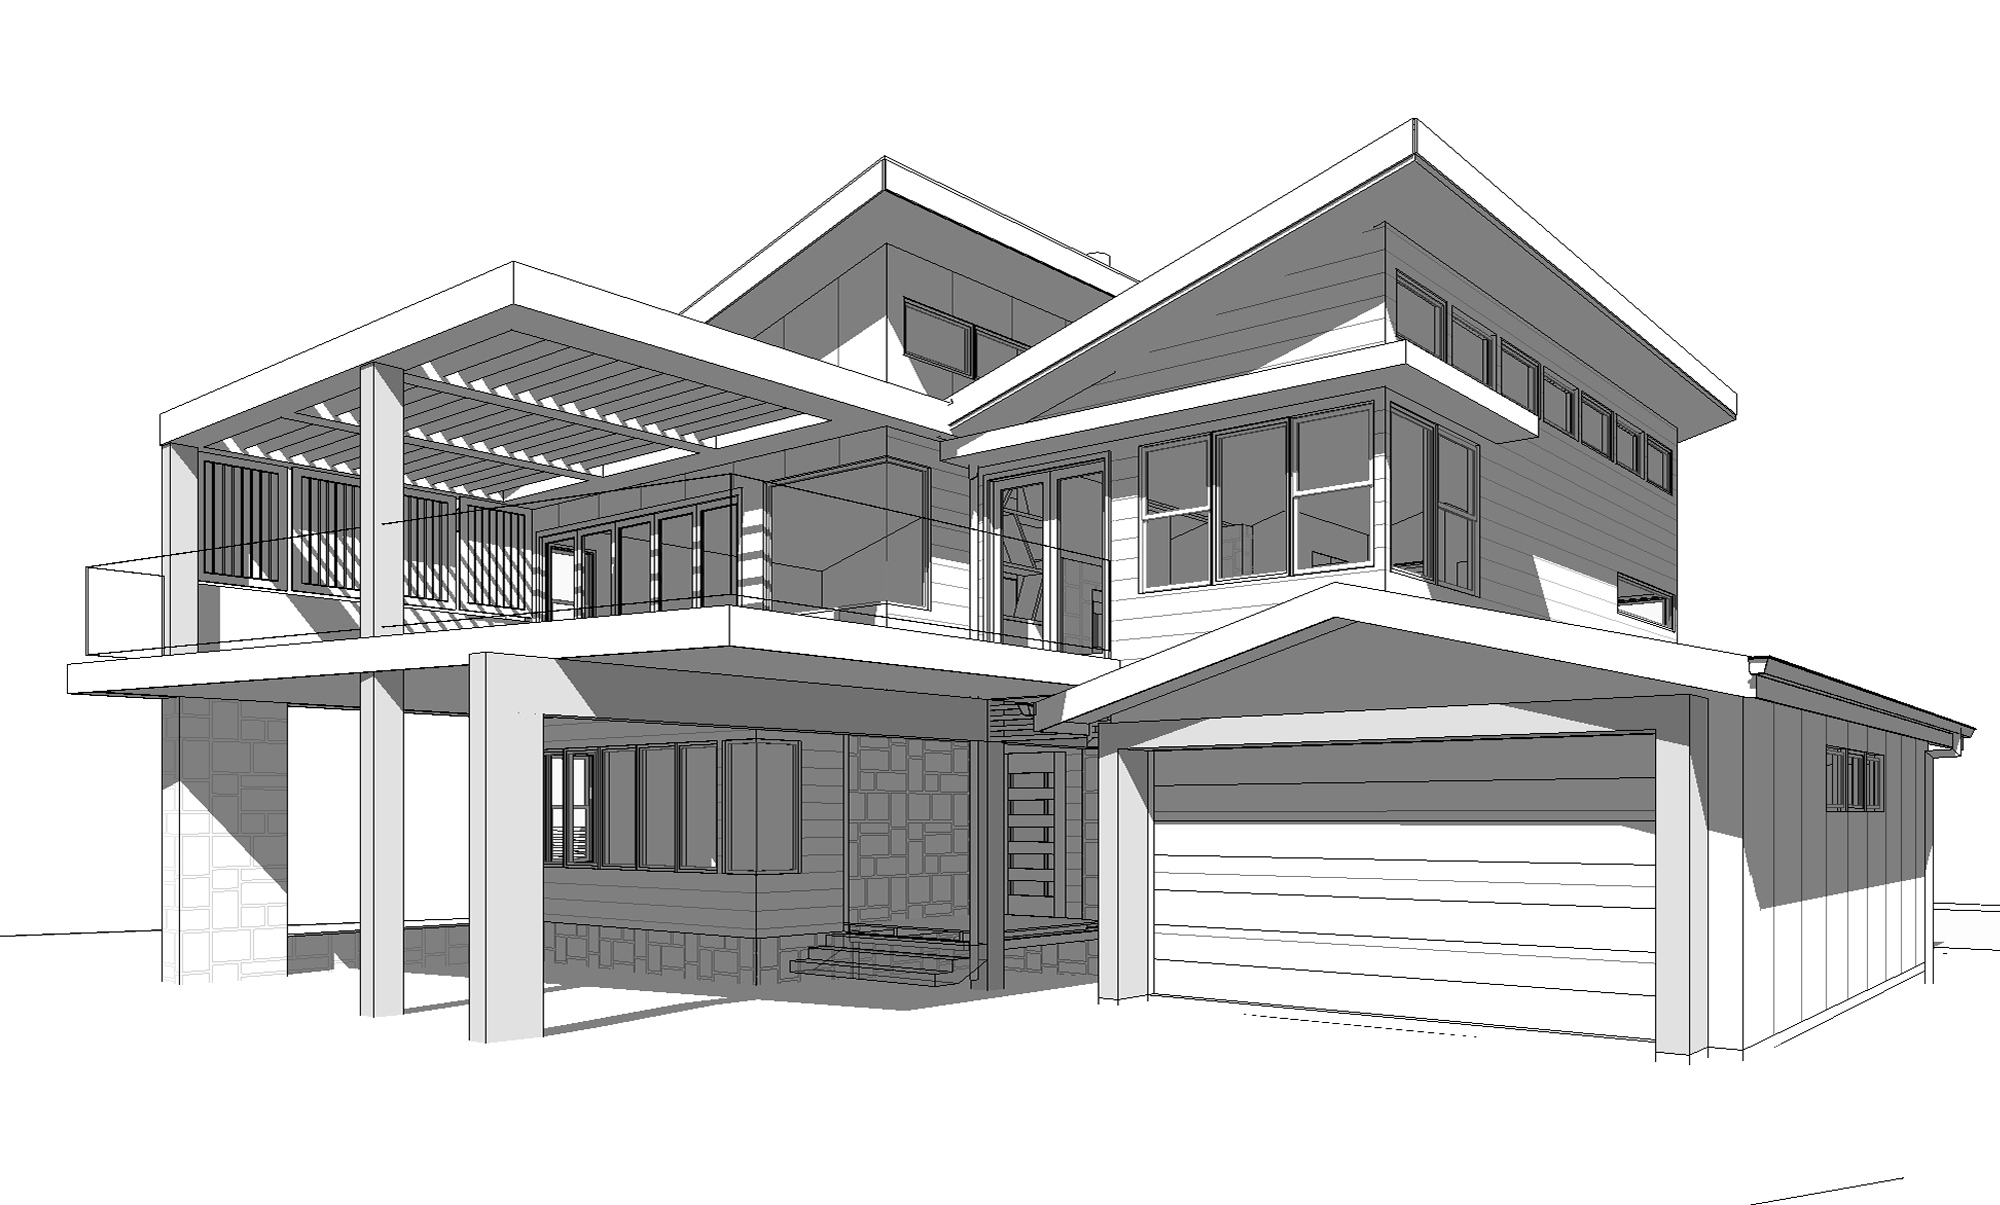 Architecture design drawing building architectural drawing for Architecture house drawing